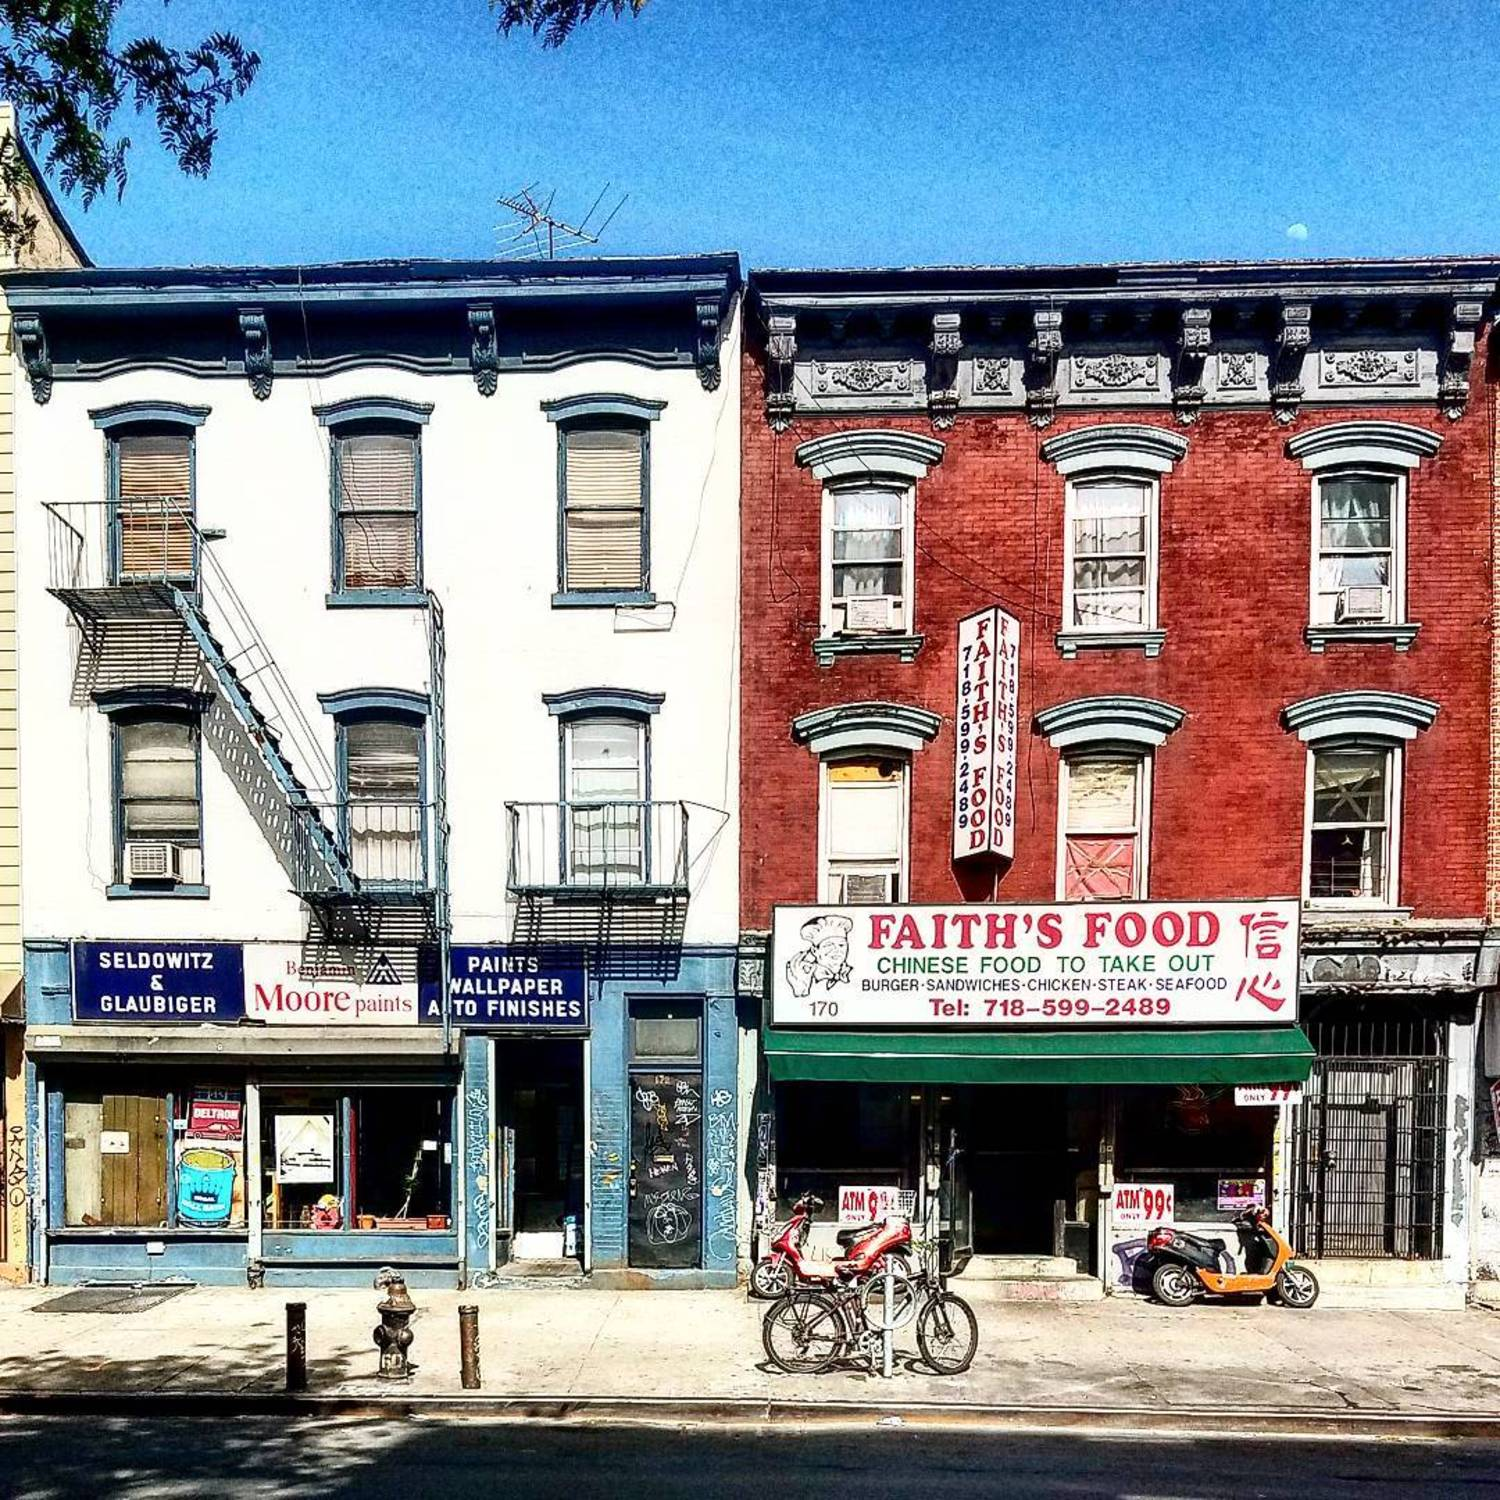 Houses and storefronts in Williamsburg, Brooklyn.